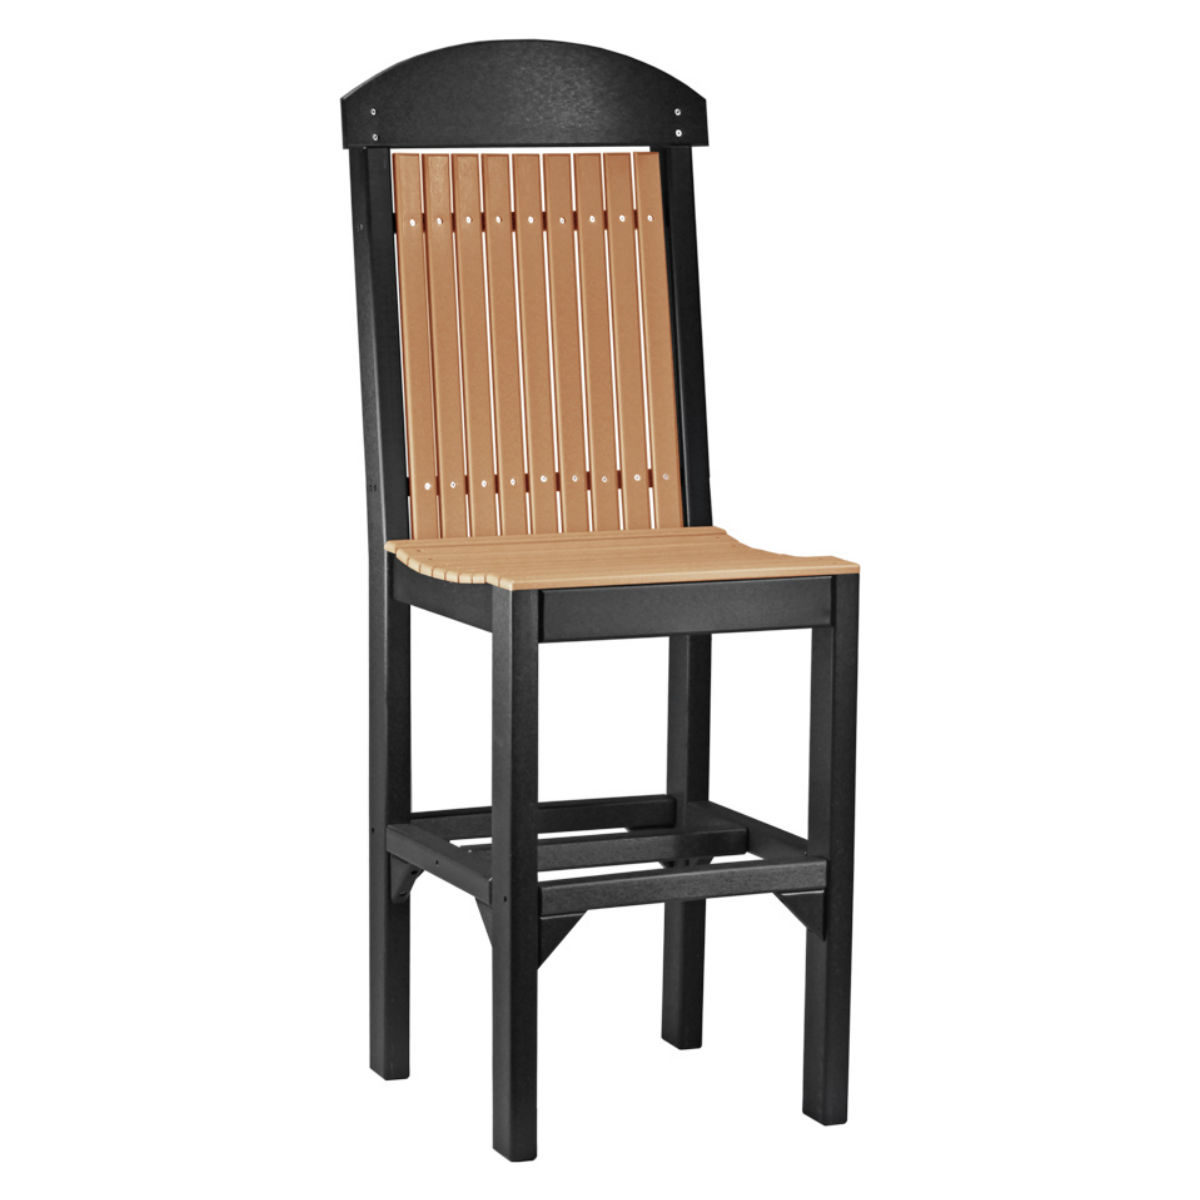 Classic Bar Chair - Cedar & Black